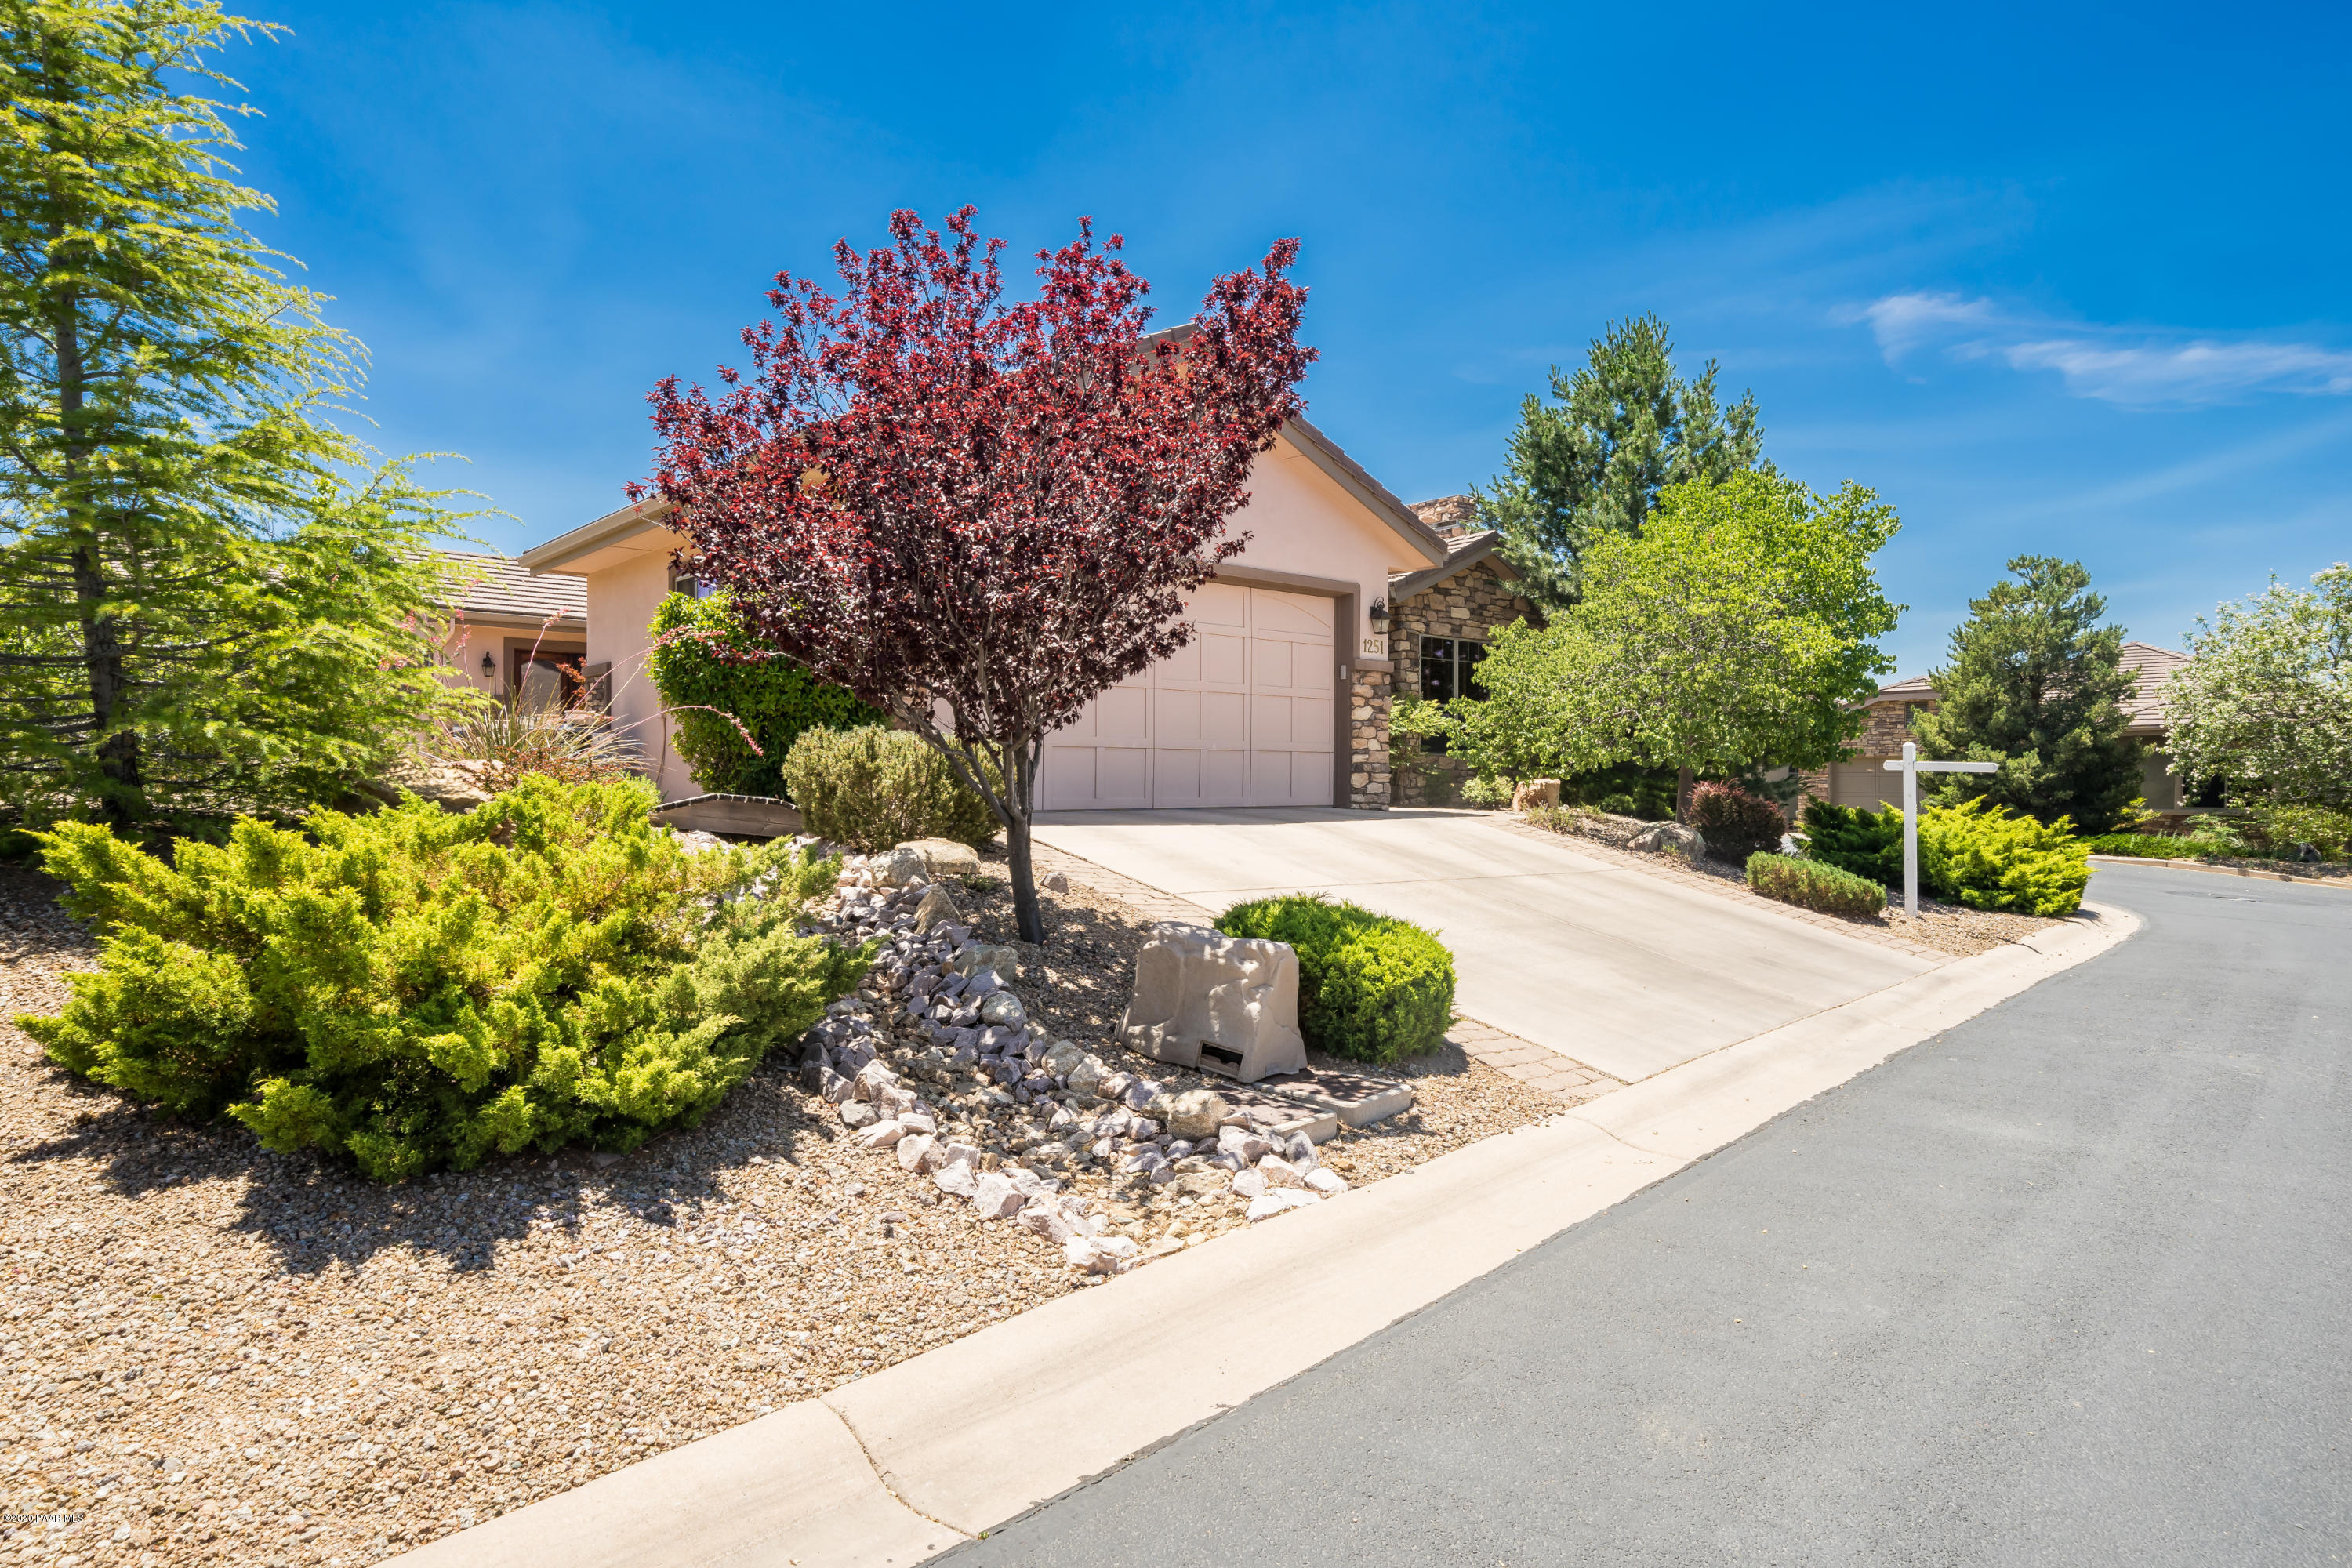 Photo of 1251 Pebble Springs, Prescott, AZ 86301